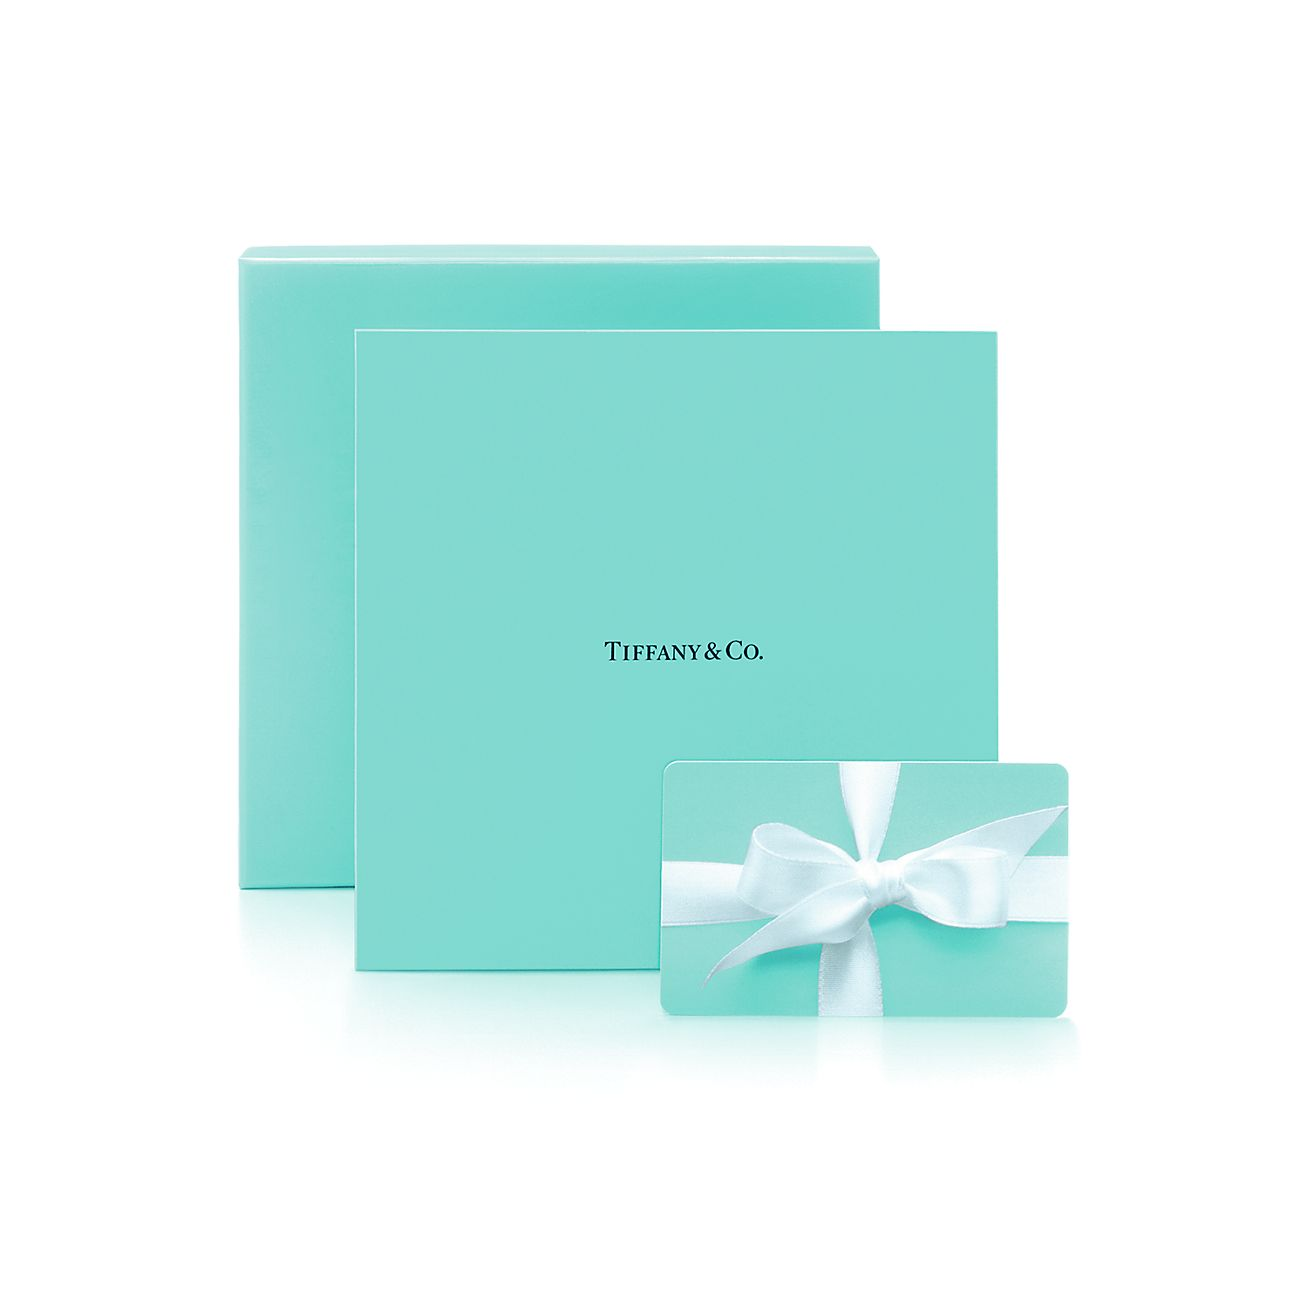 The Tiffany Gift Card